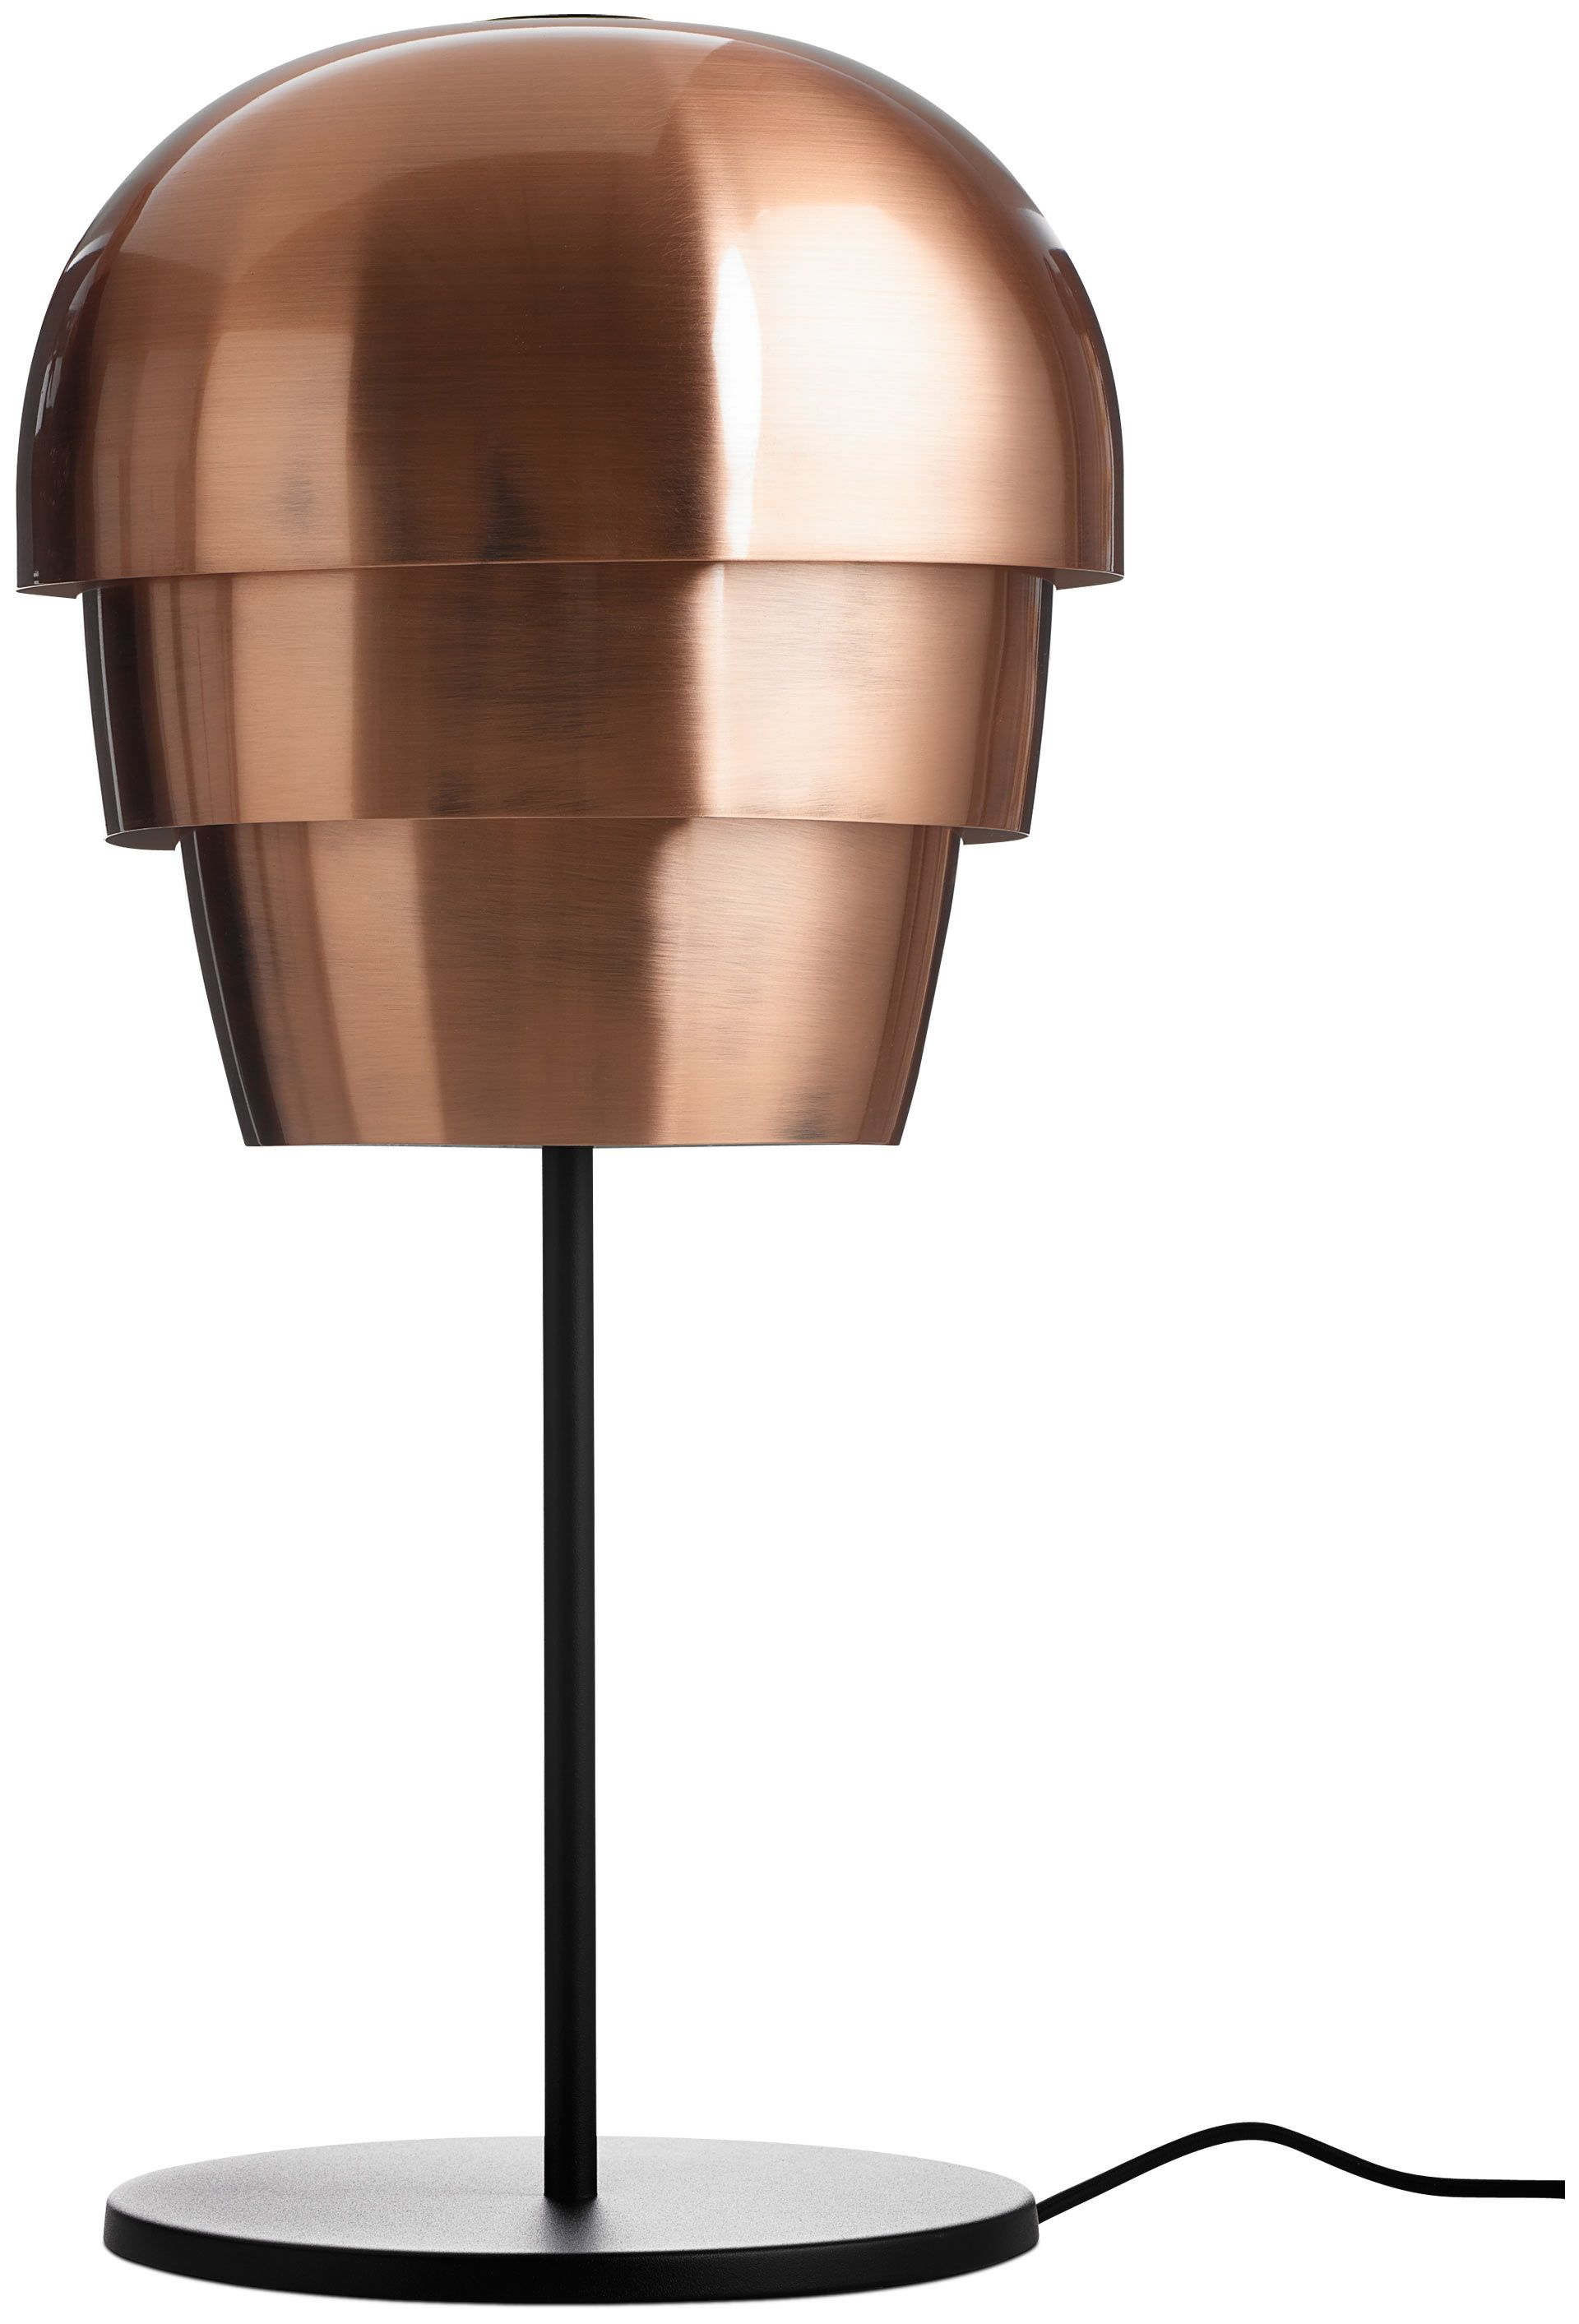 modern table lamps  boconcept furniture store sydney australia  - modern table lamps  boconcept furniture store sydney australia copper lamp